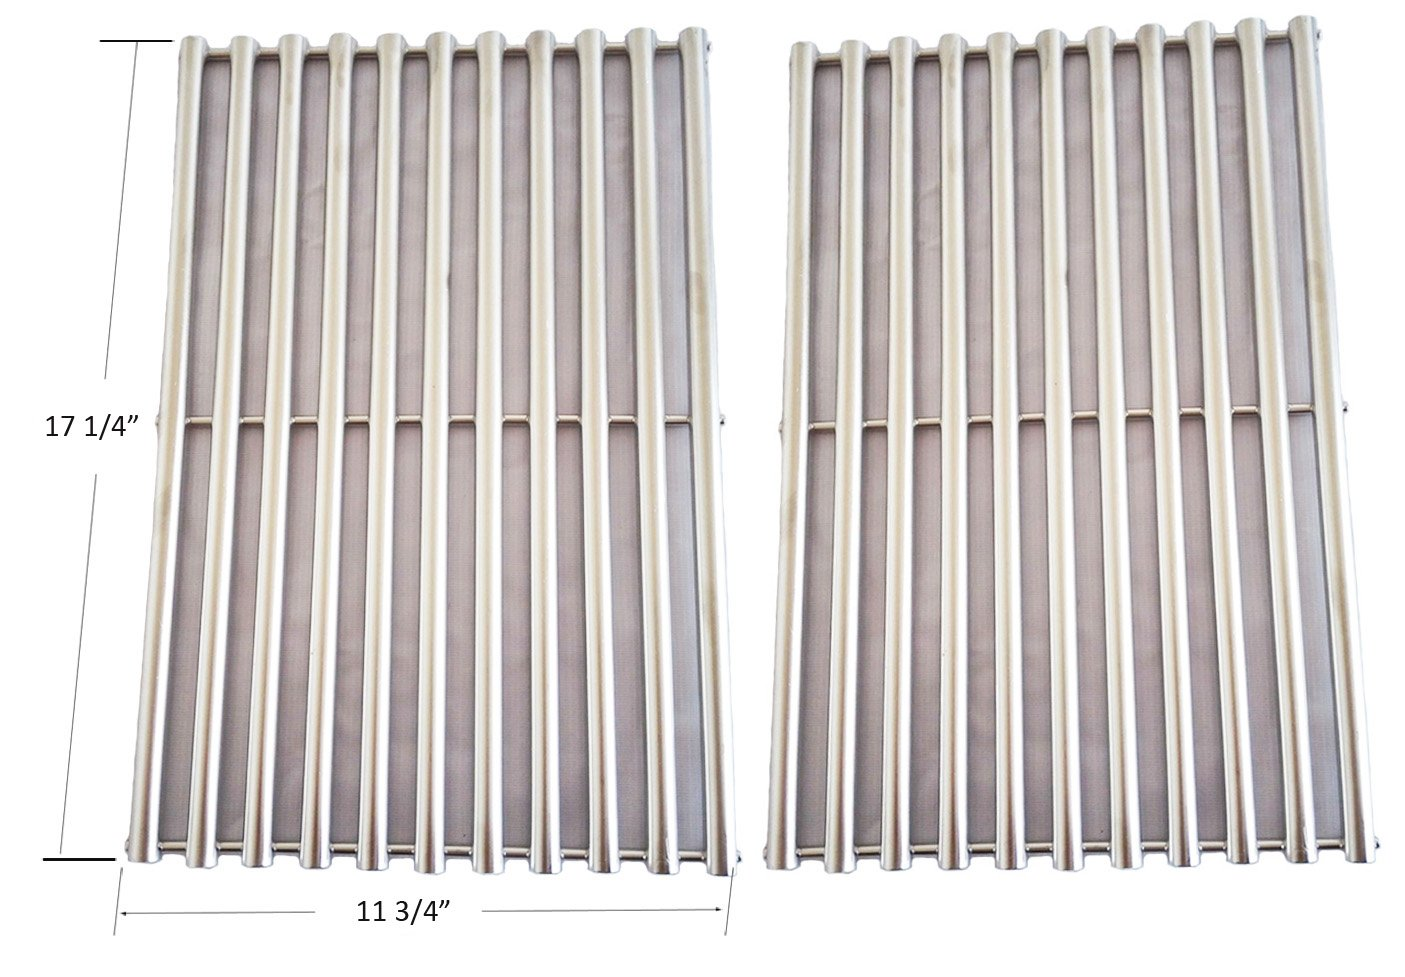 9930 Stainless Steel Cooking Grill Grid / Grate Replacement for Weber 9930 Ducane Lowes Model Grills, Set of 2 by BBQ funland